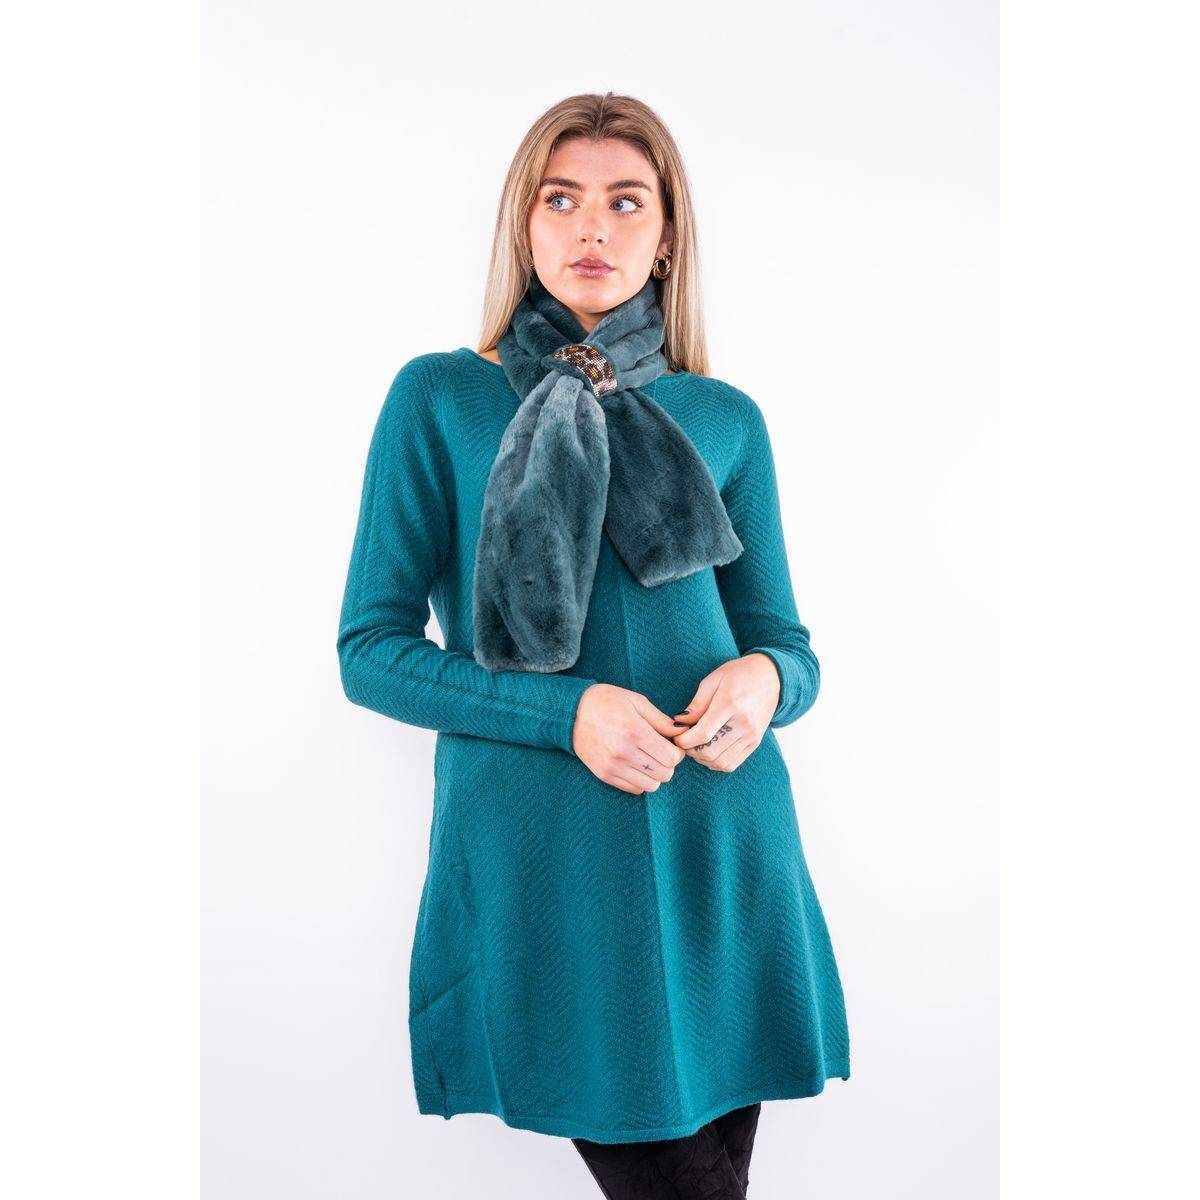 Jumper dress with matching scarf Lucy Sparks